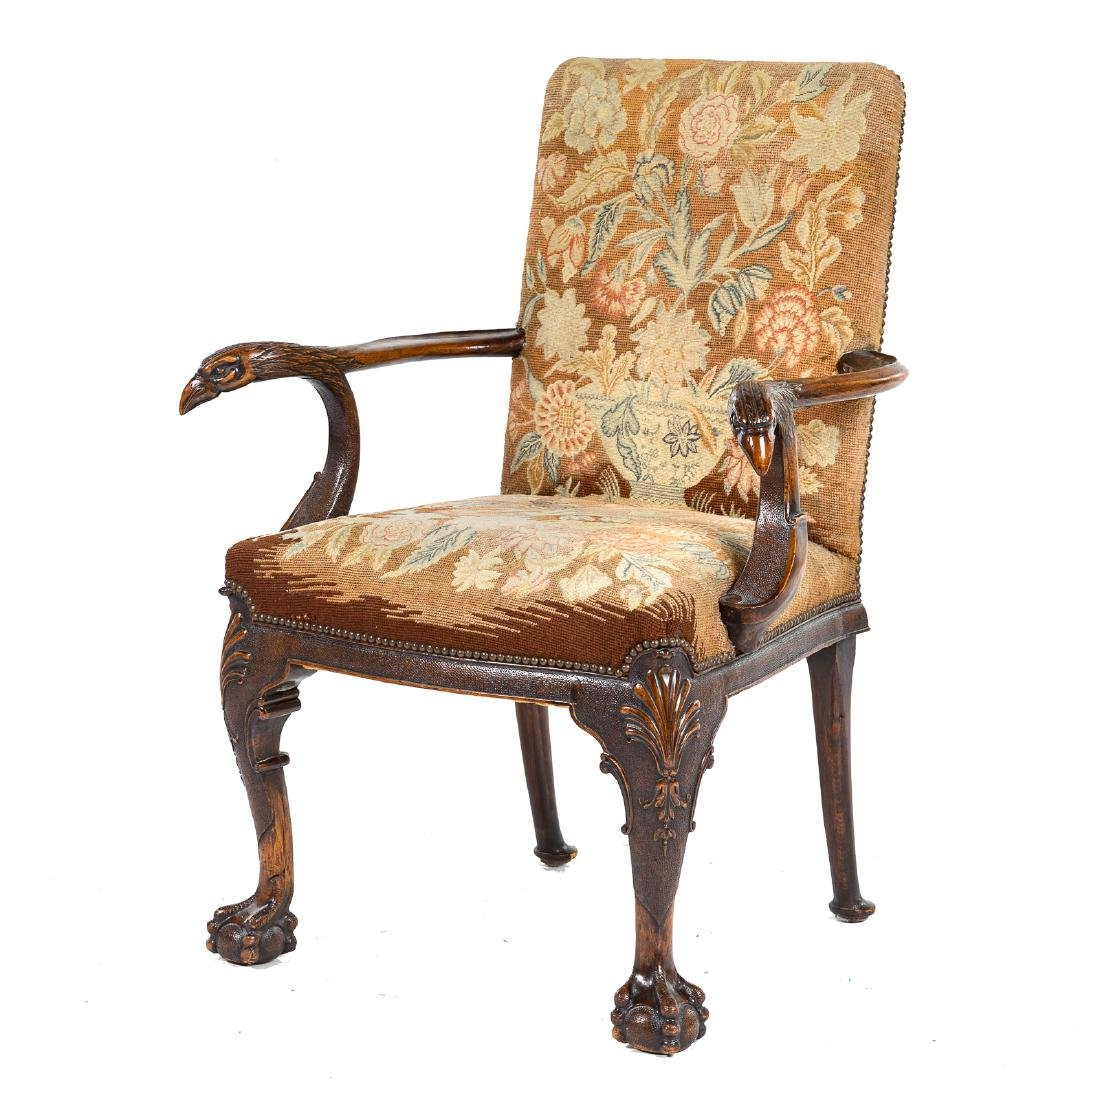 George II style walnut upholstered armchair